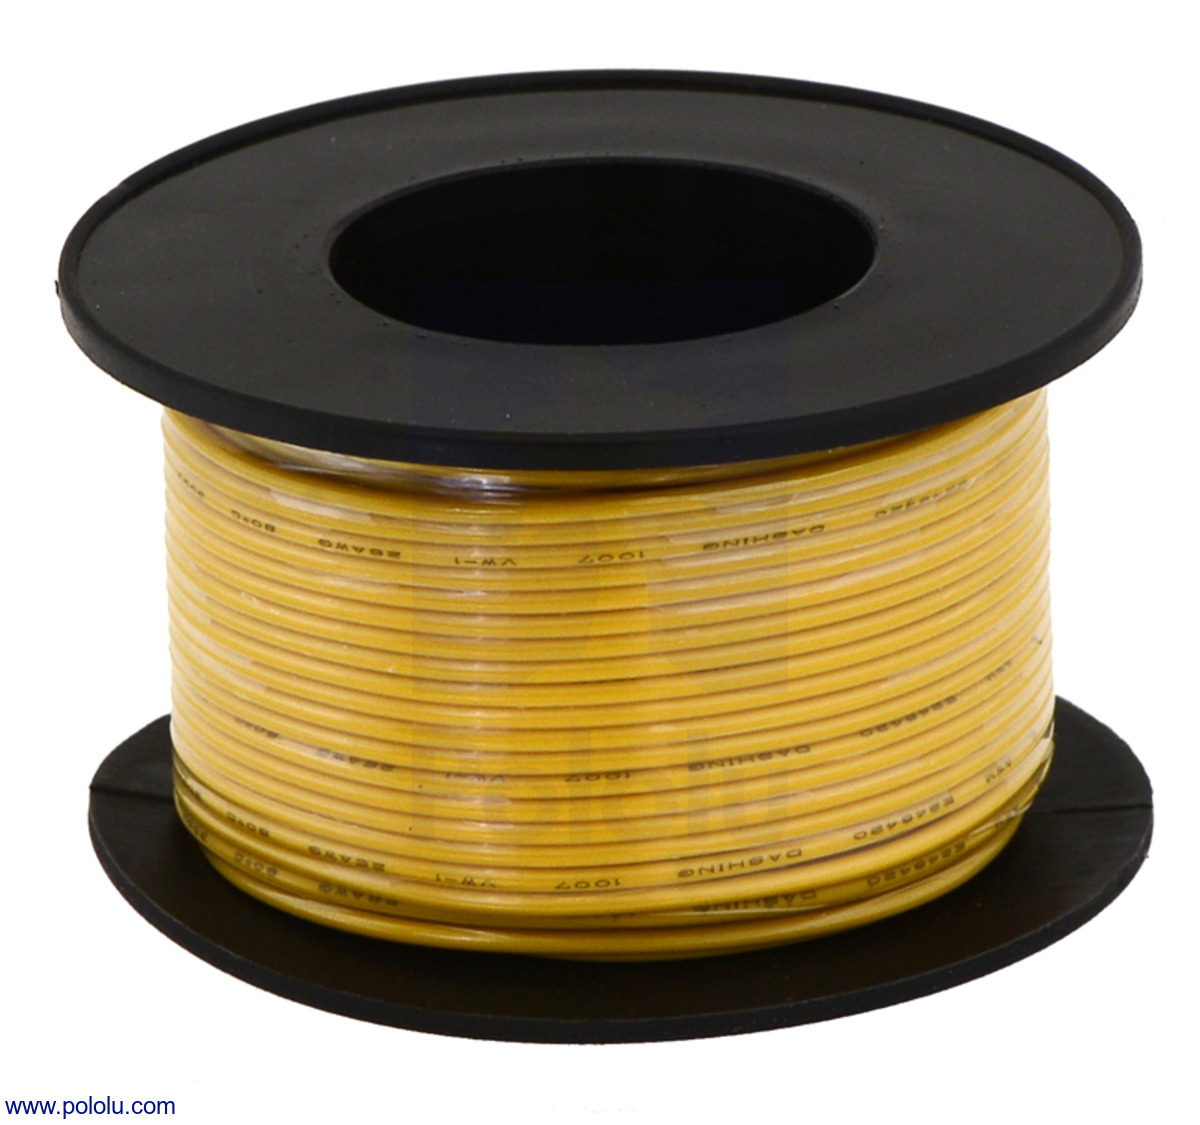 Pololu stranded wire yellow 26 awg 70 feet stranded wire yellow 26 awg 70 feet greentooth Choice Image